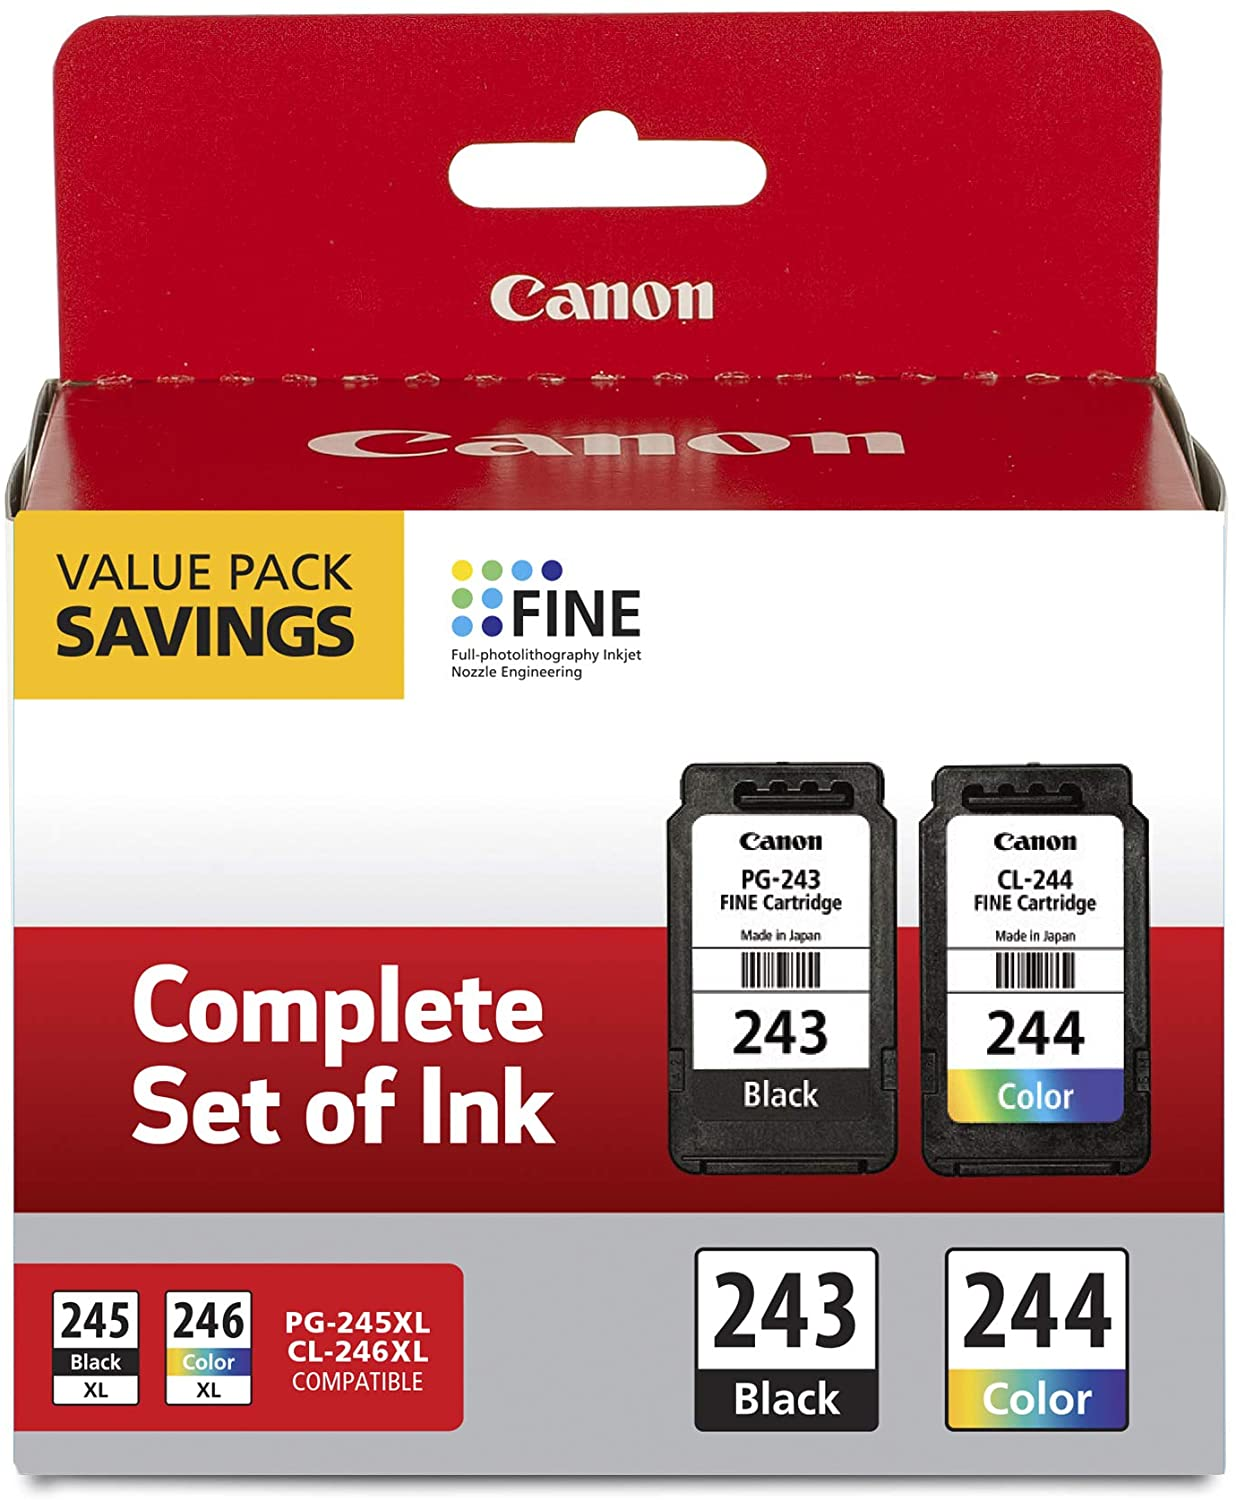 Canon PG-243/ CL-244Ink Multi pack, Compatible to TR4520, MX492, MG2520, MG2922, TS302 and TS202 Printers